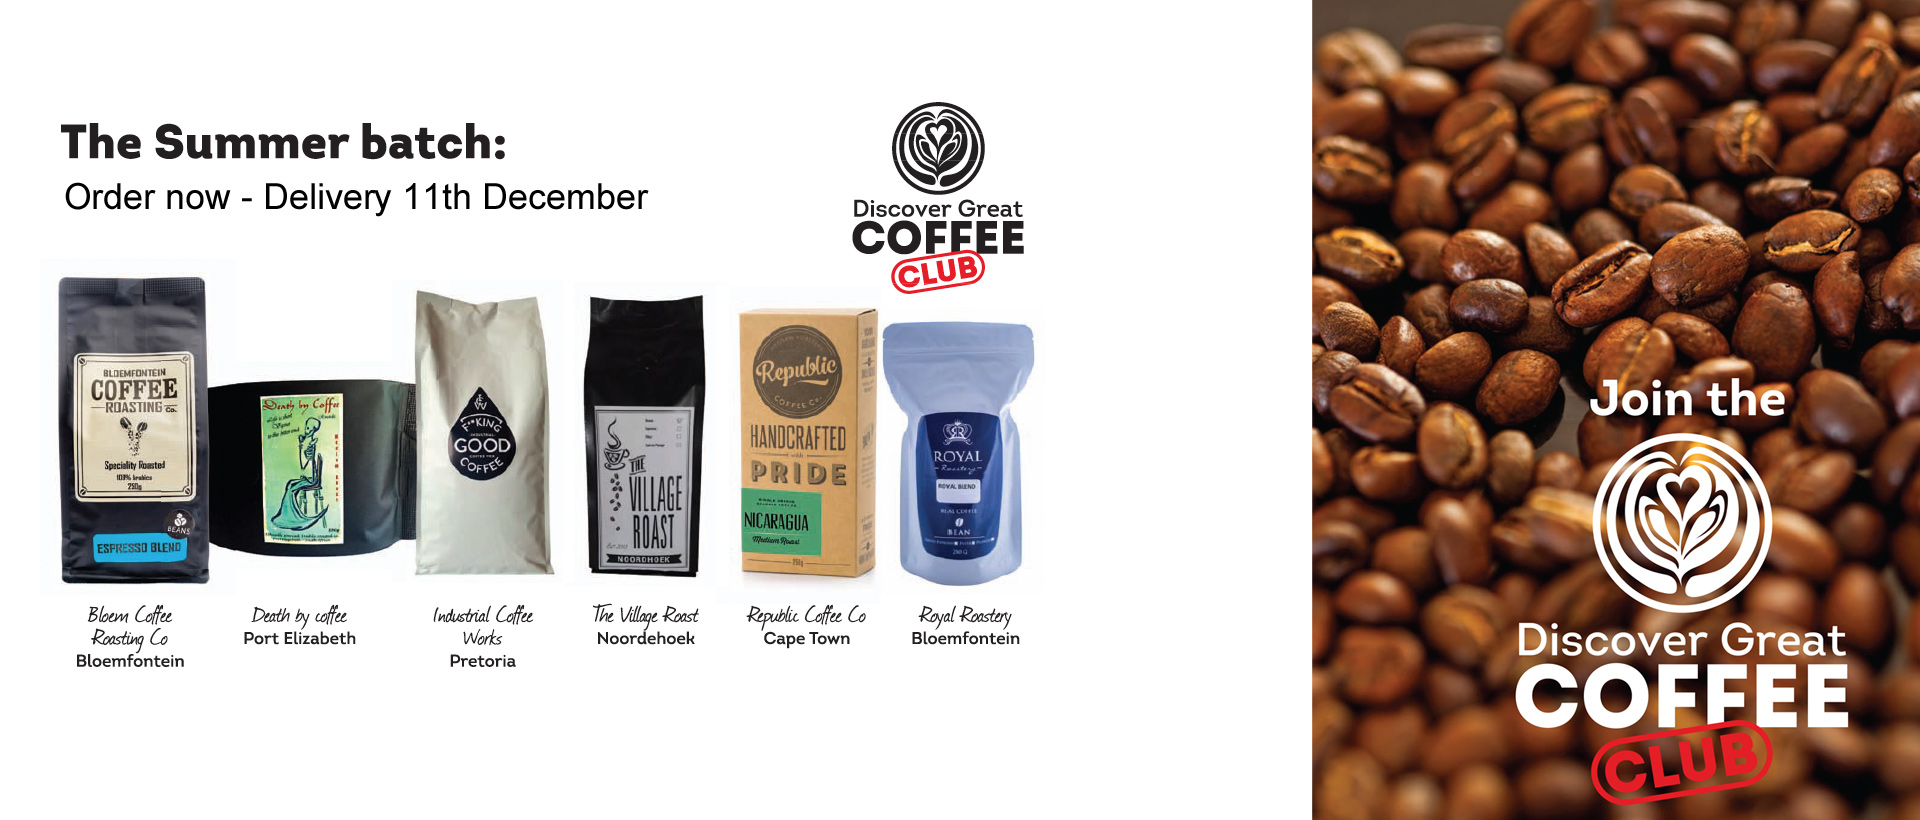 Discover Great Coffee Club